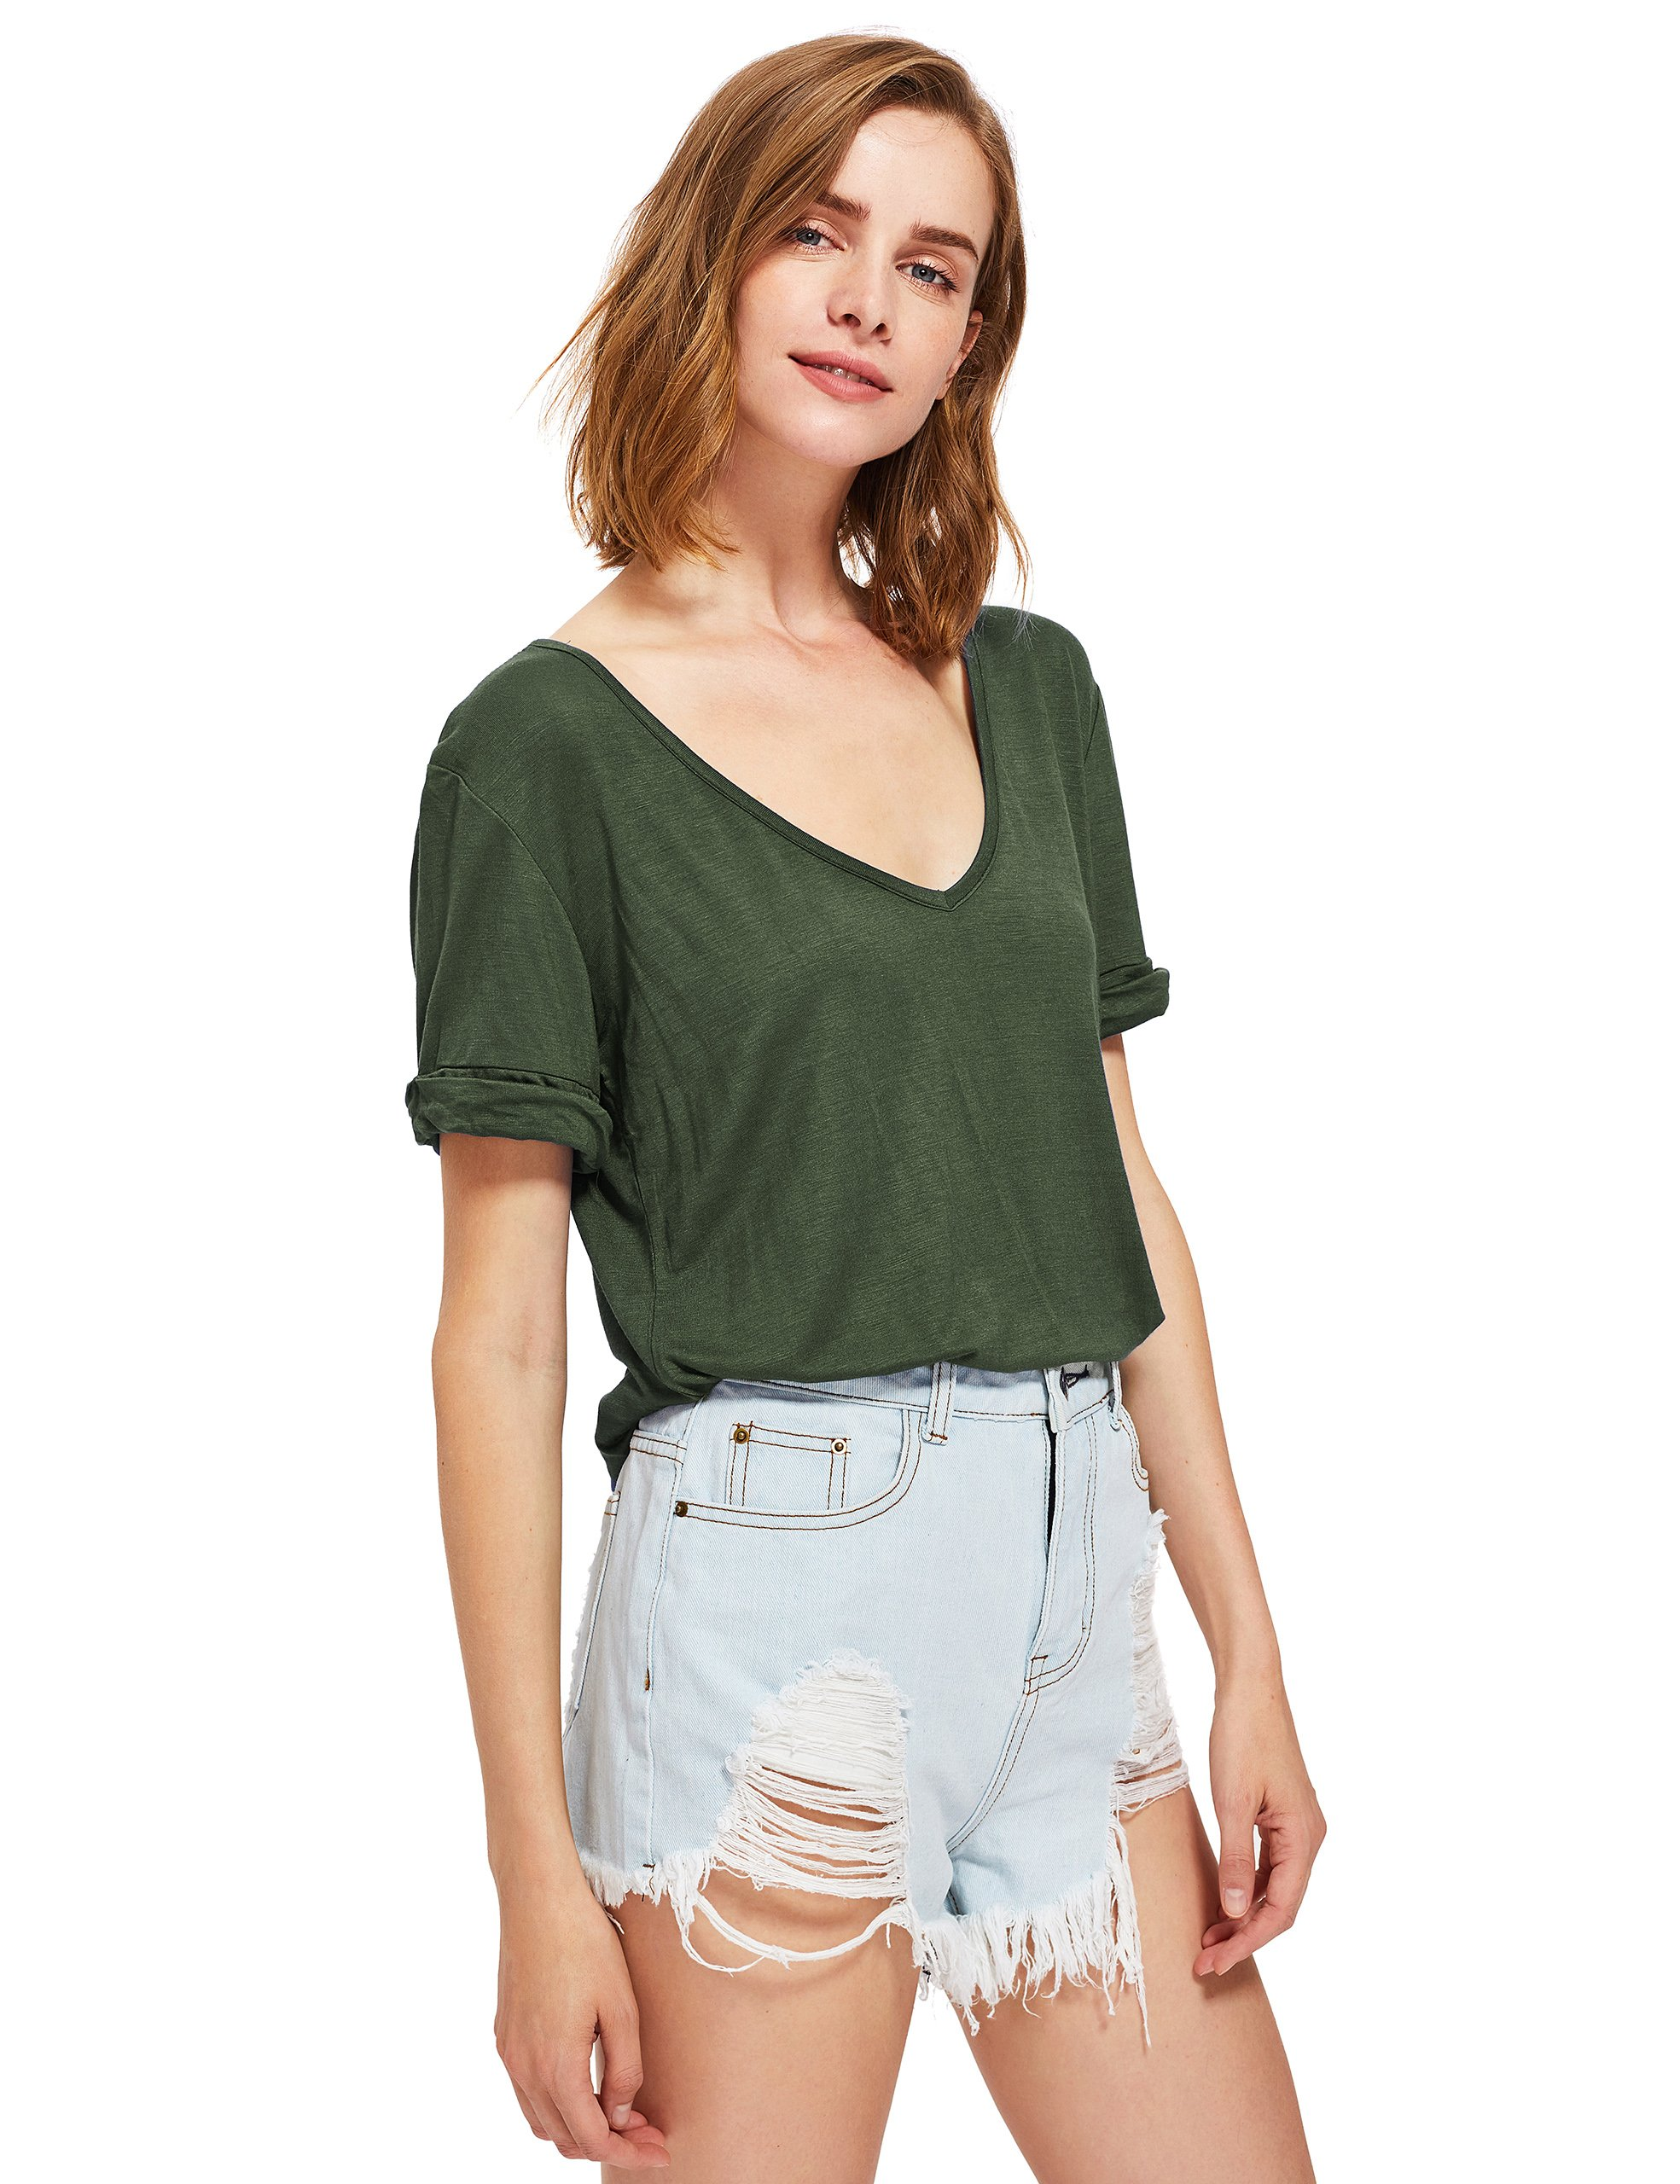 SheIn Women's Summer Short Sleeve Loose Casual Tee T-Shirt